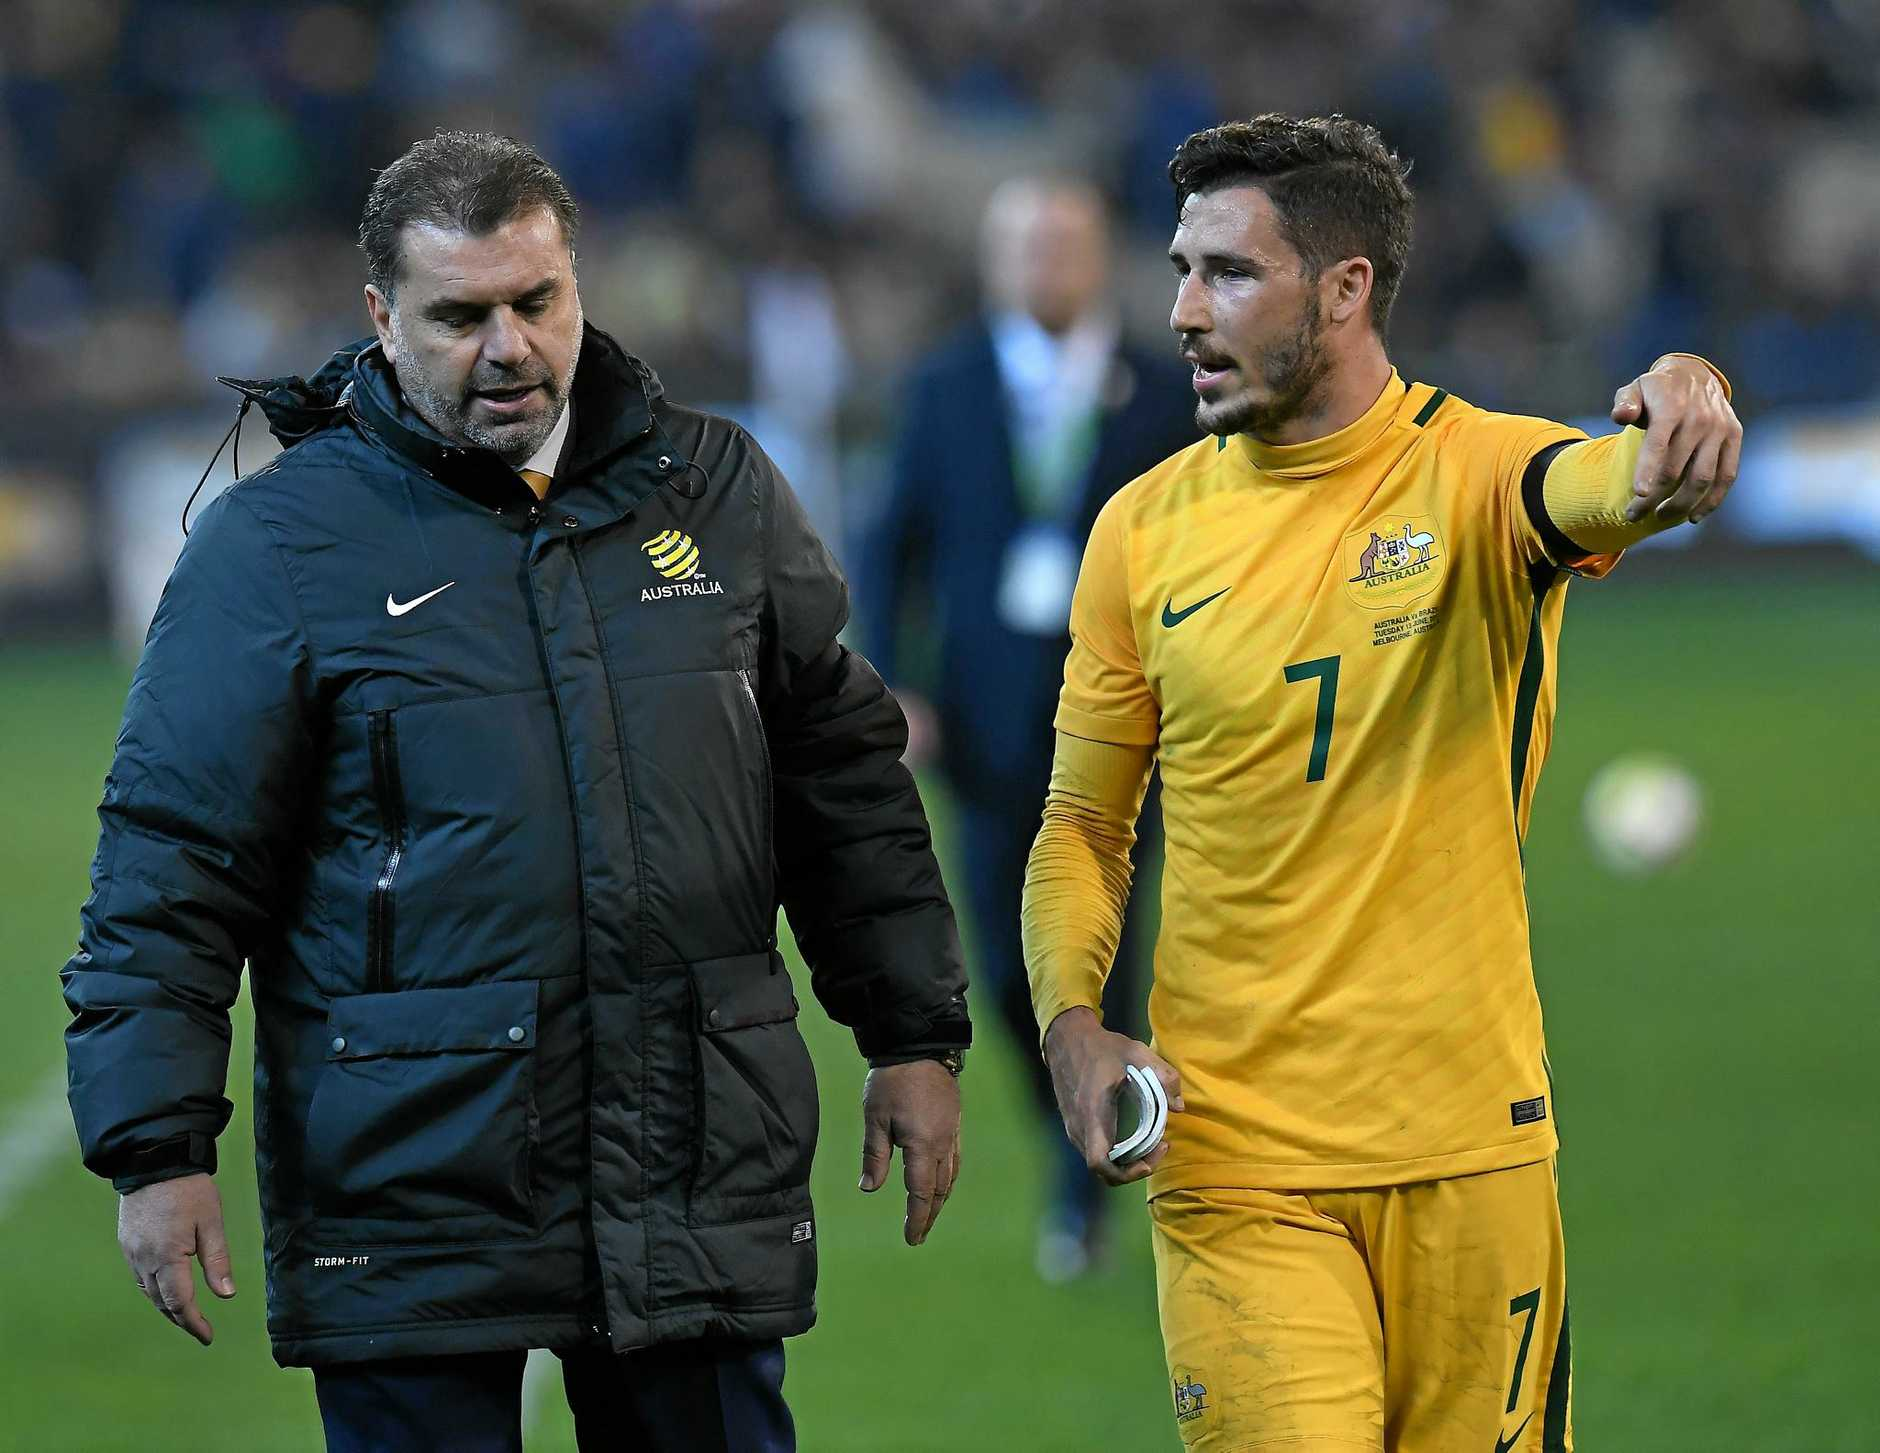 WORDS OF WISDOM: Mathew Leckie chats with Socceroos coach Ange Postecoglou.